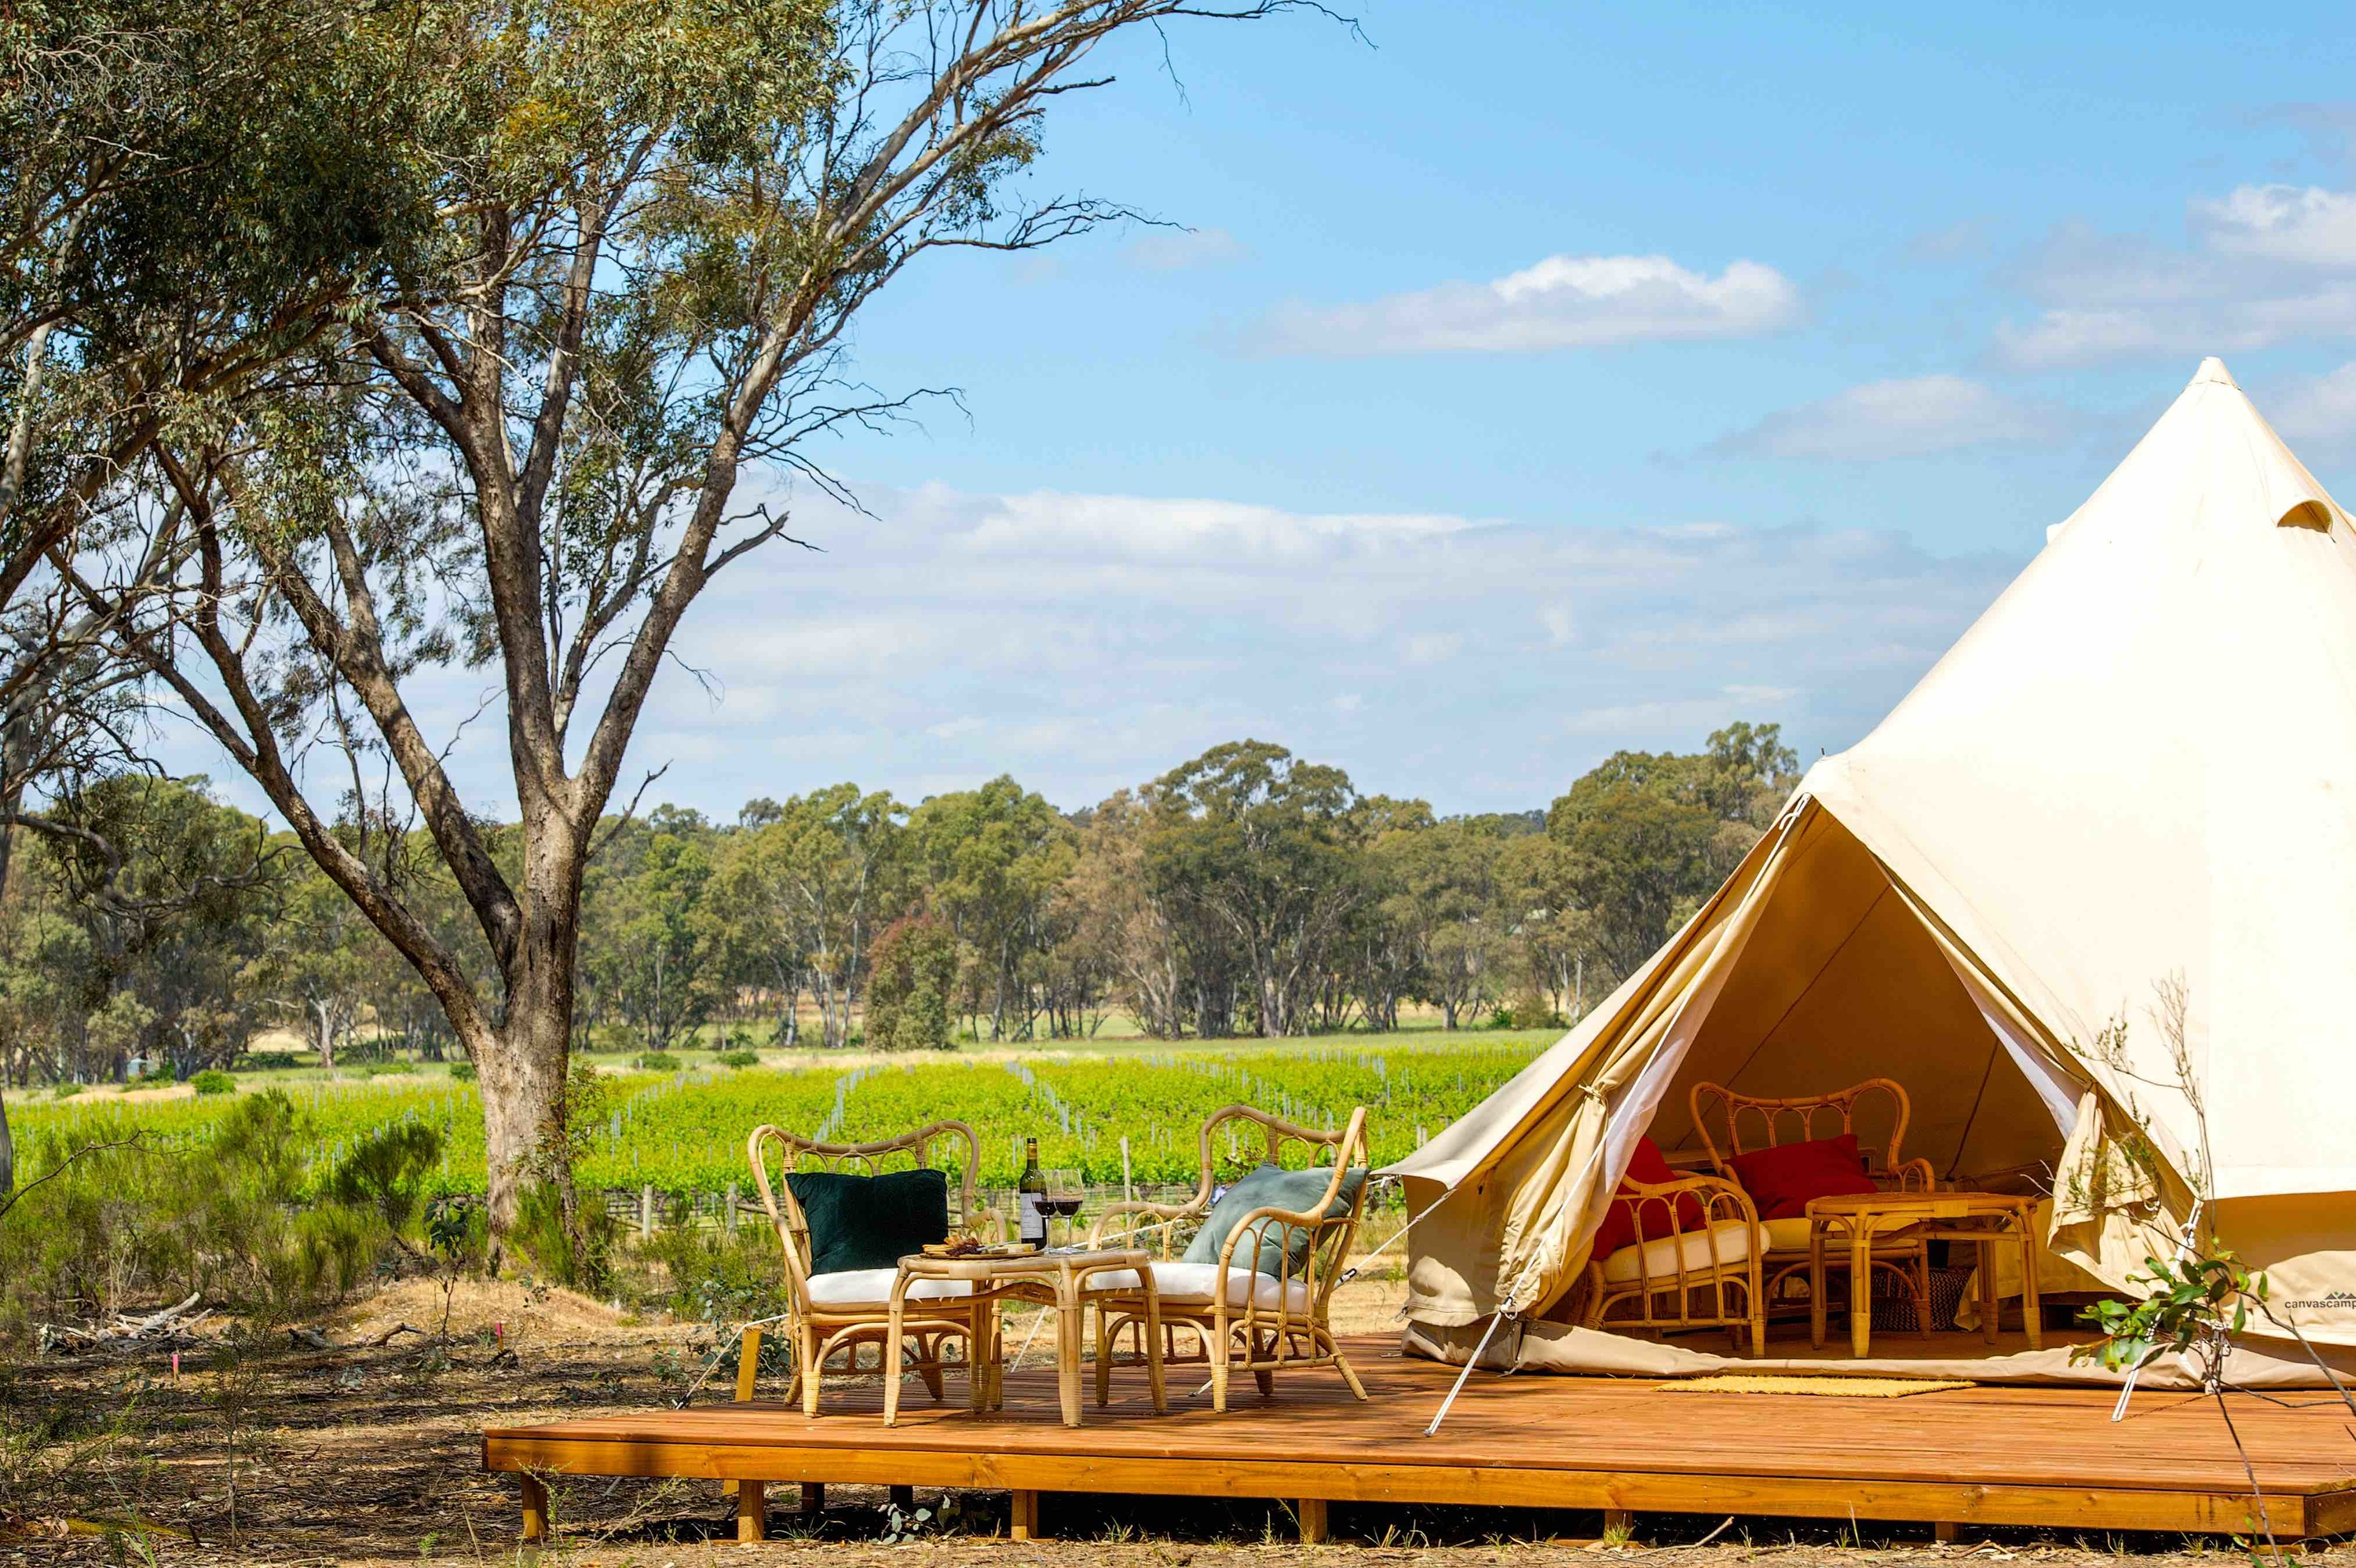 Victoria's newest glamping spot is located in a winery